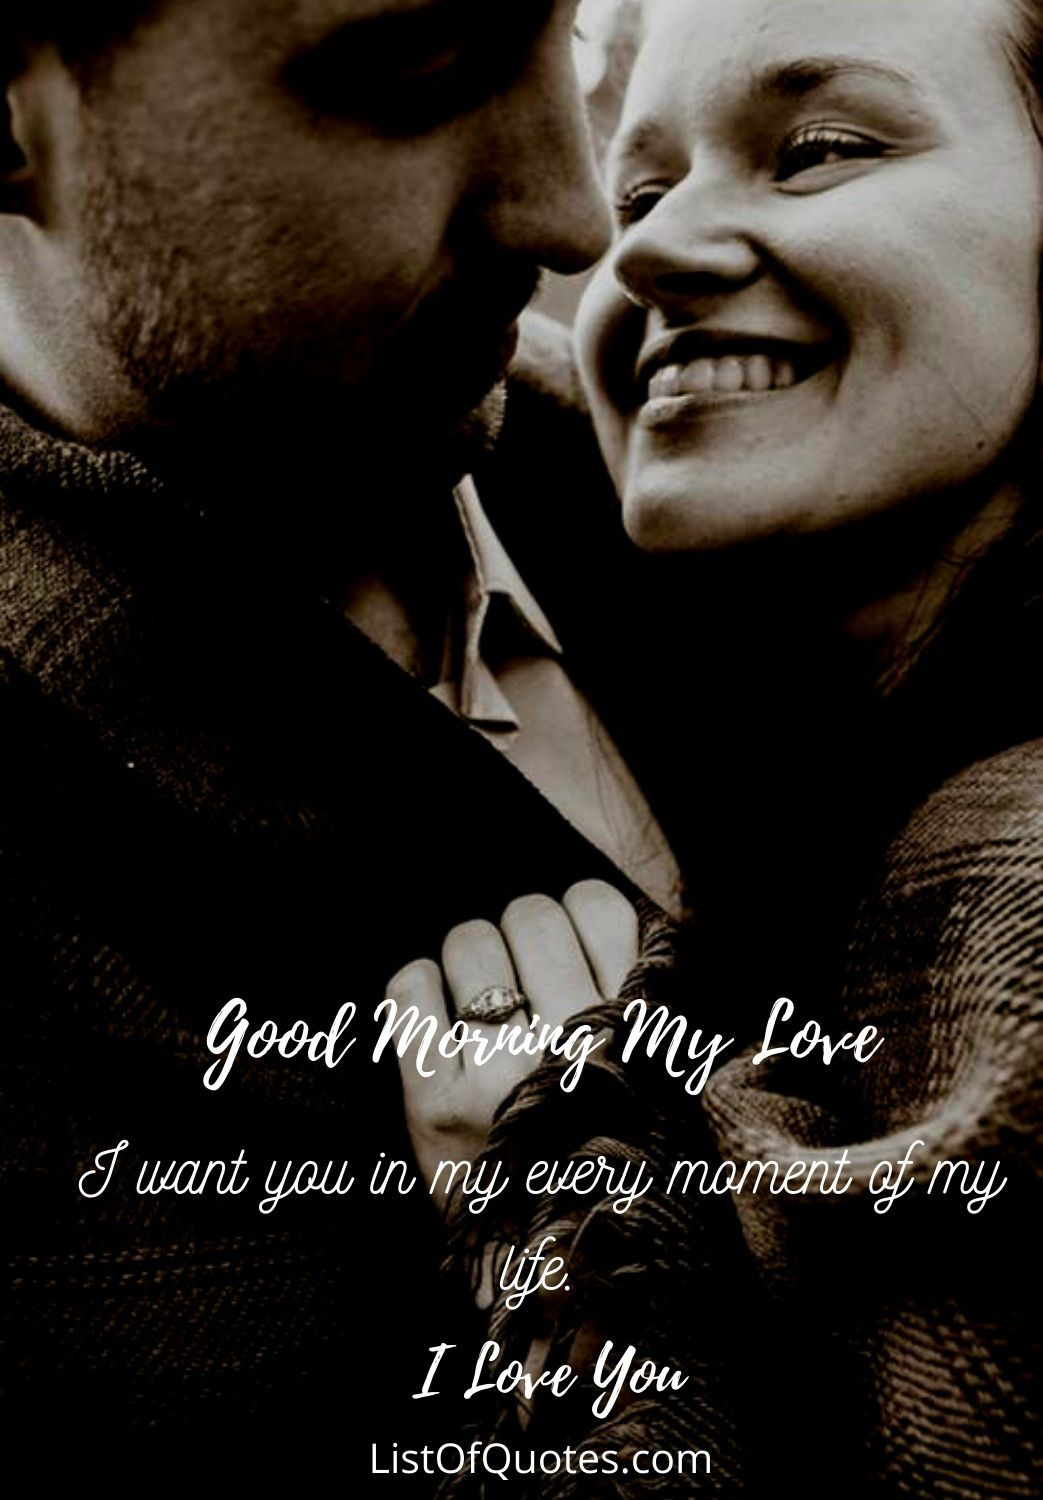 sweet love good morning quotes image for him boyfriend husband